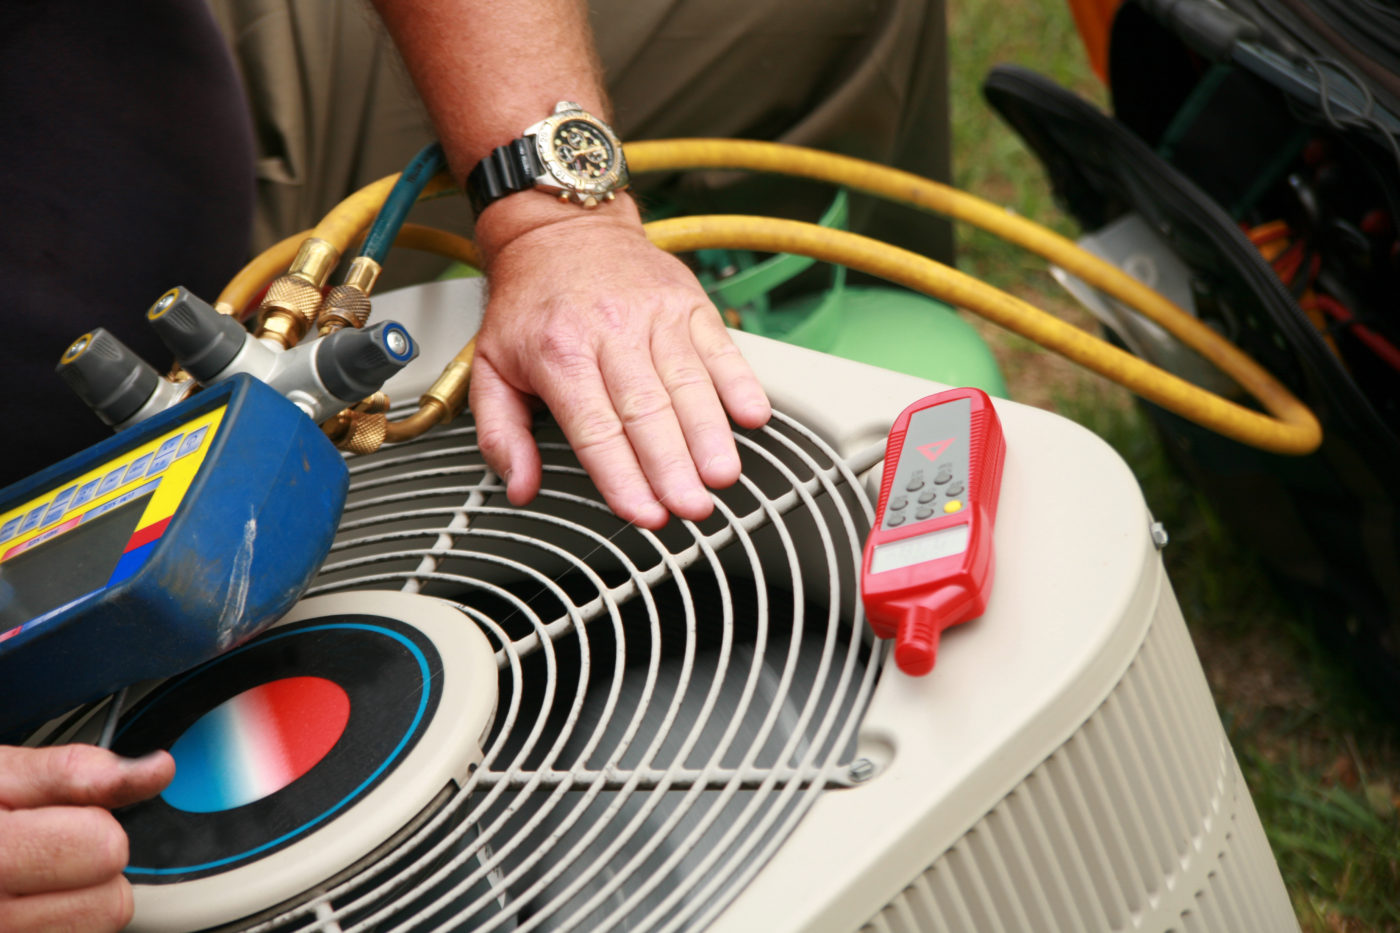 AC Repair Companies In Grapevine TX